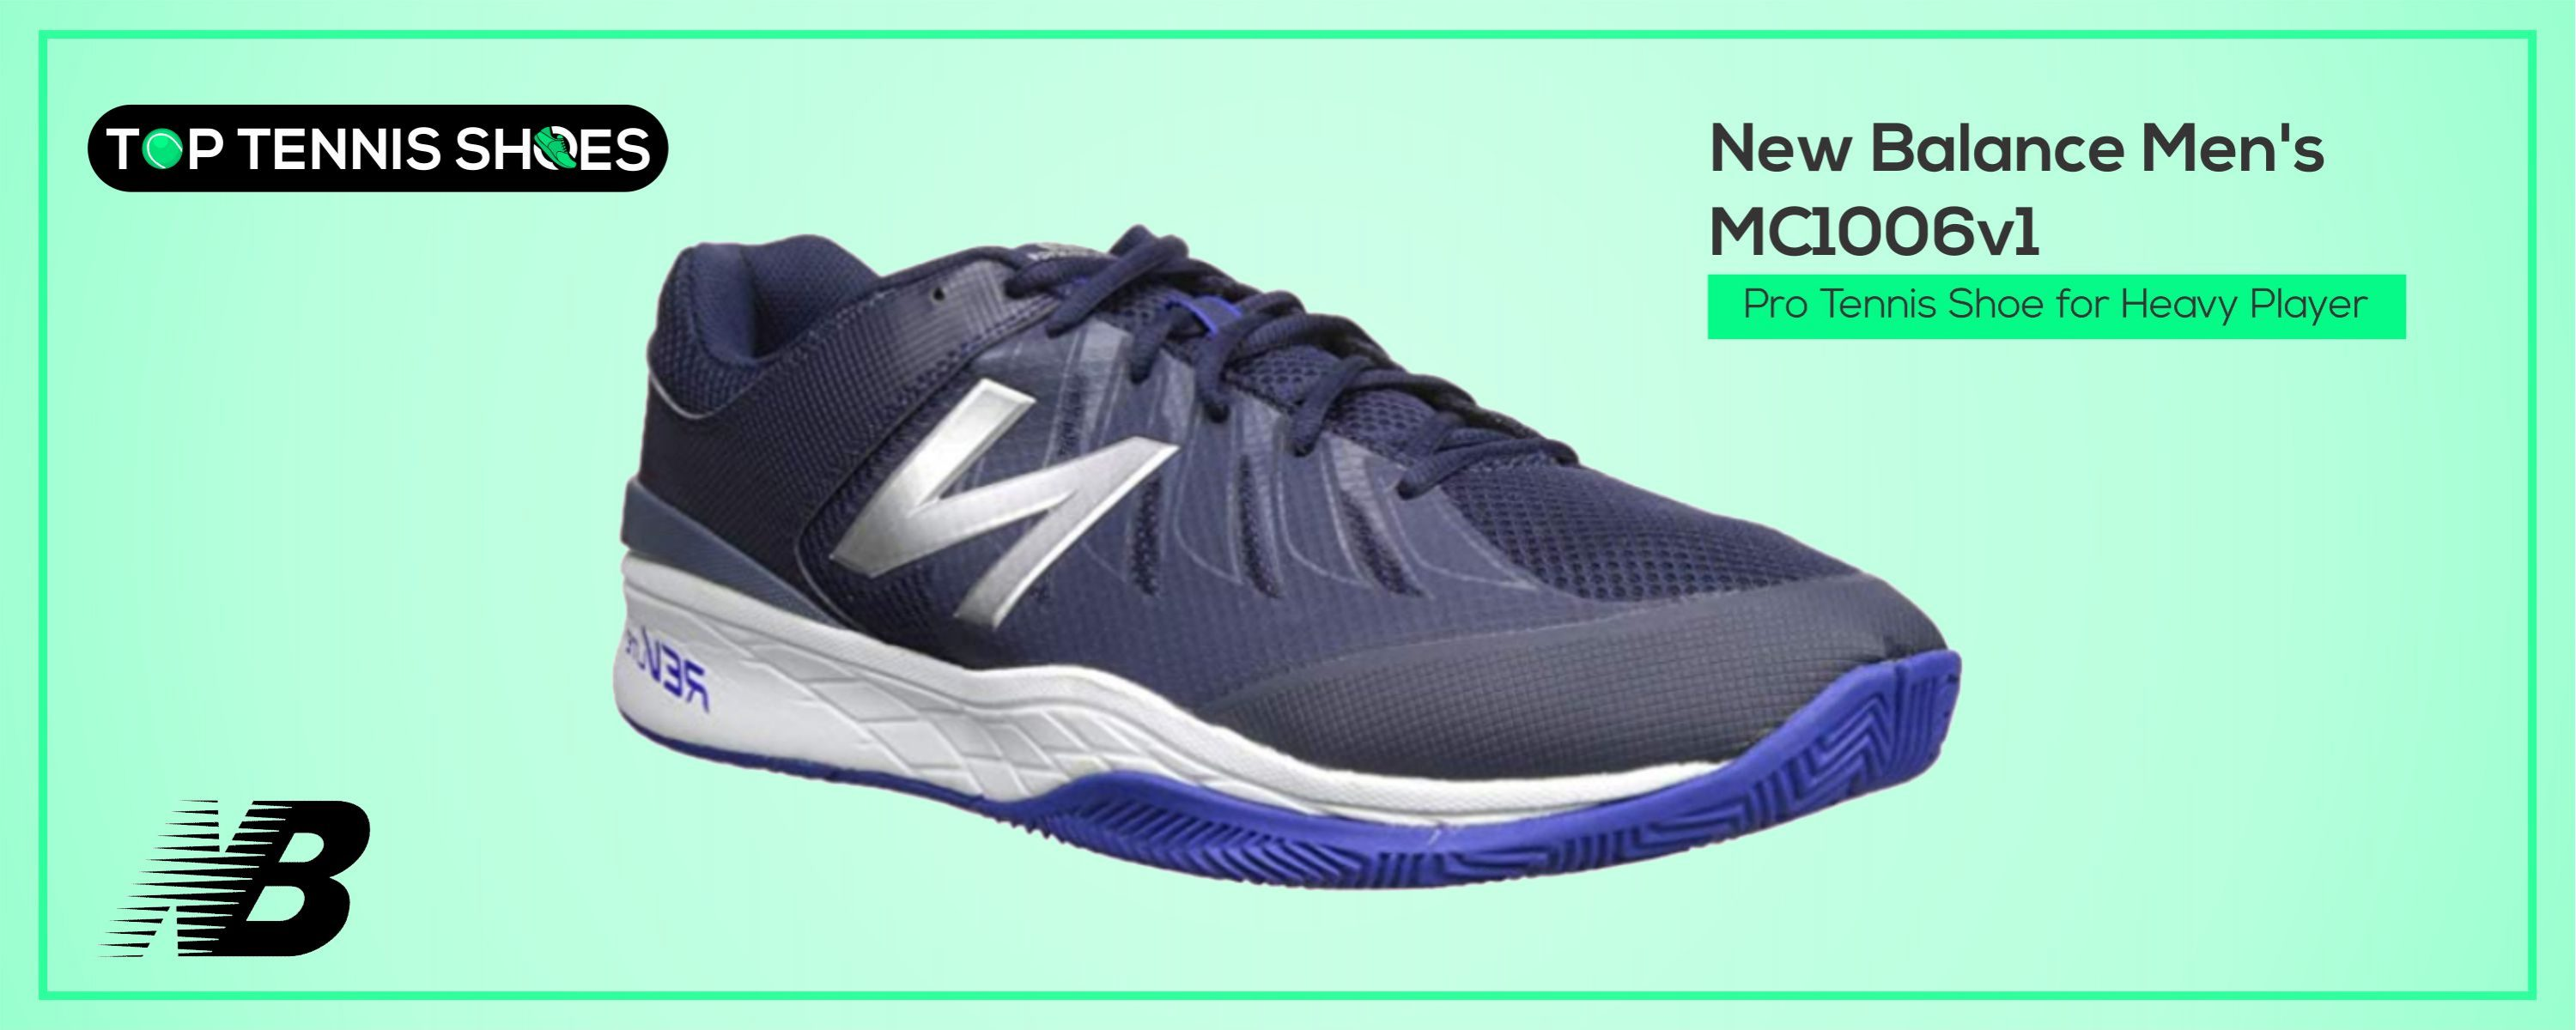 tennis shoes for heavy players 2018